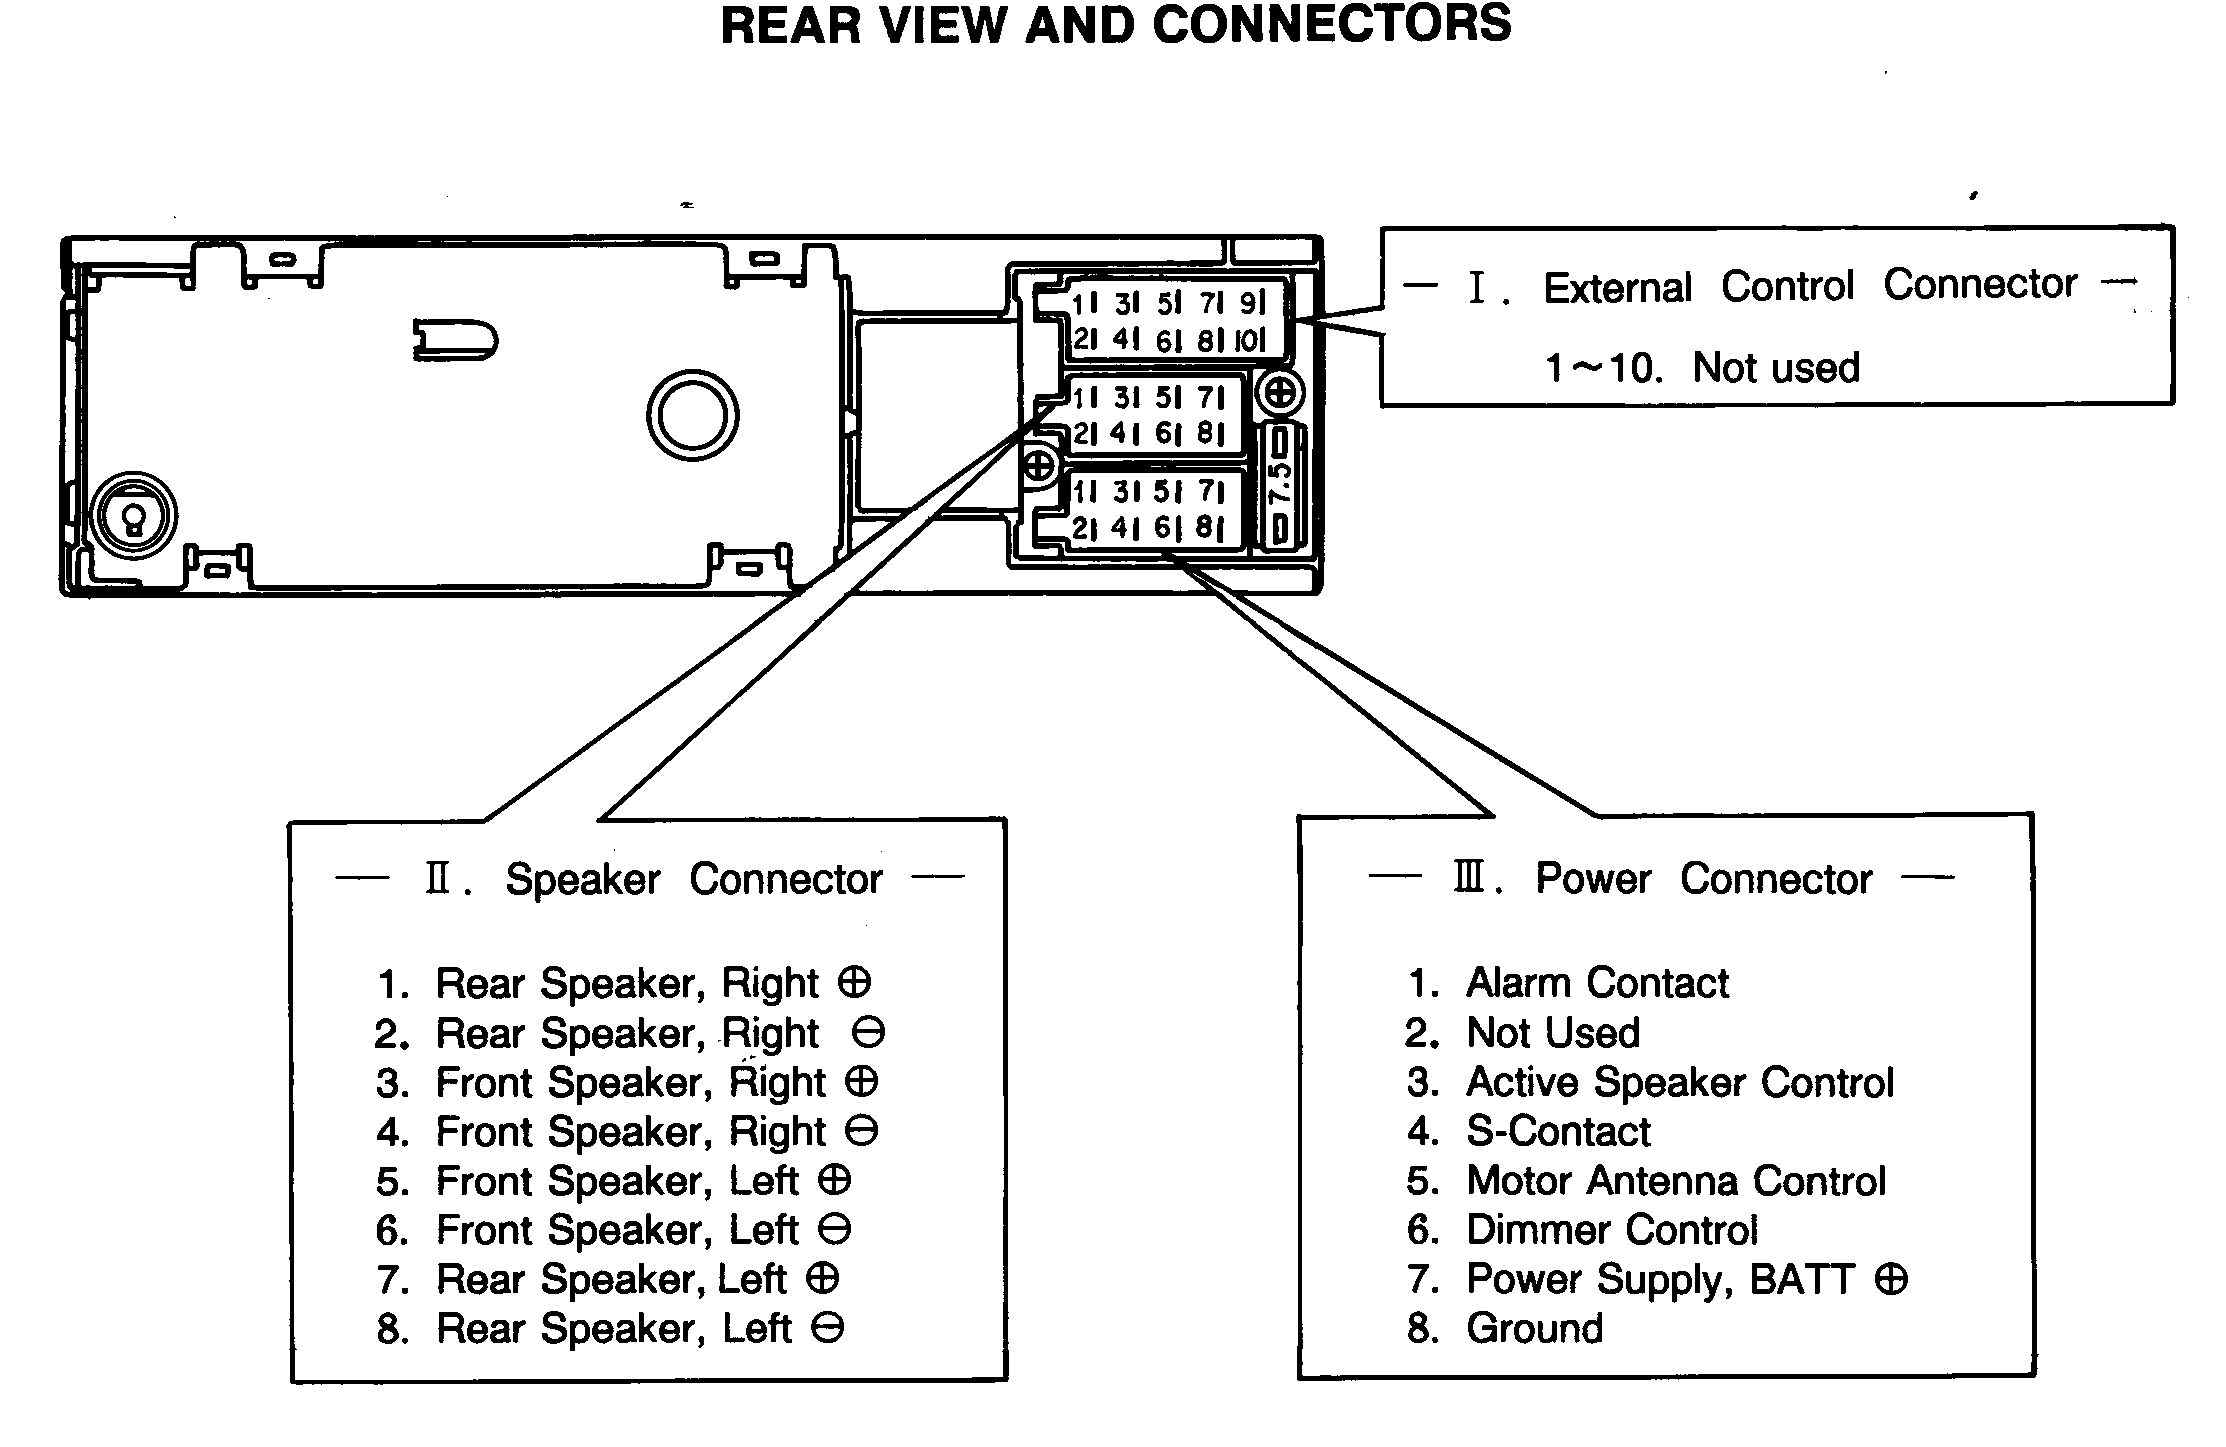 1998 Hyundai Elantra Radio Wiring Diagram Start Building A 2005 Engine Vw Schematic Rh Macro Program Com 05 2003